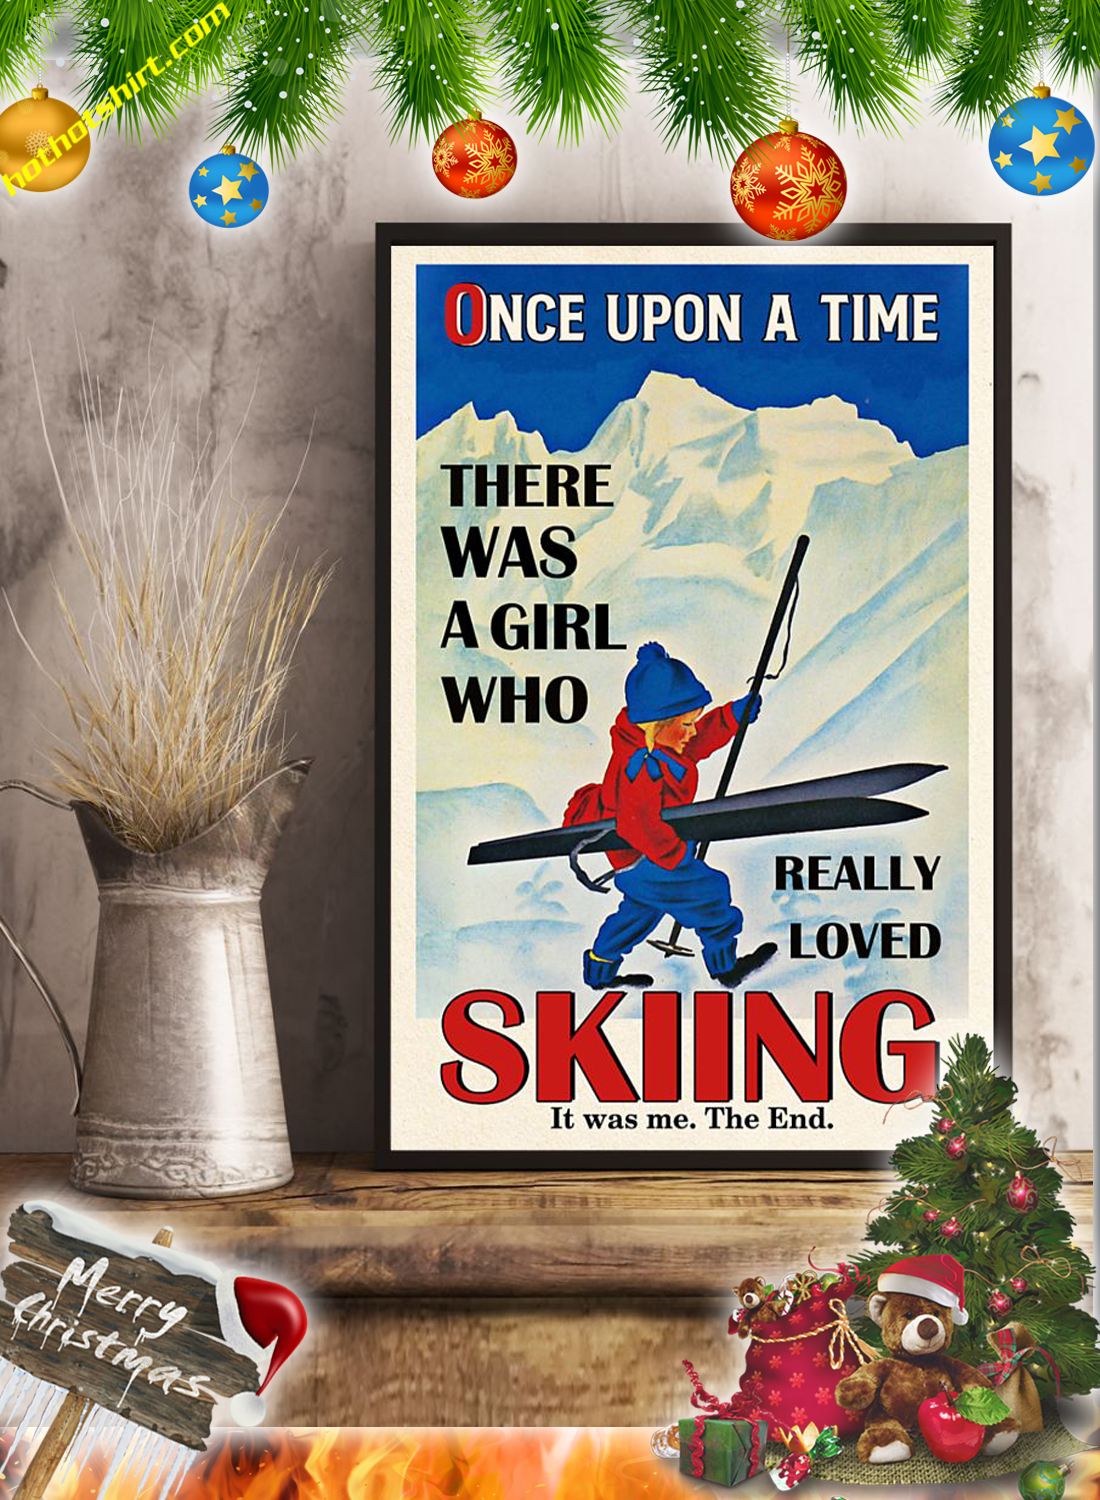 There was a girl who really loved skiing Poster 3